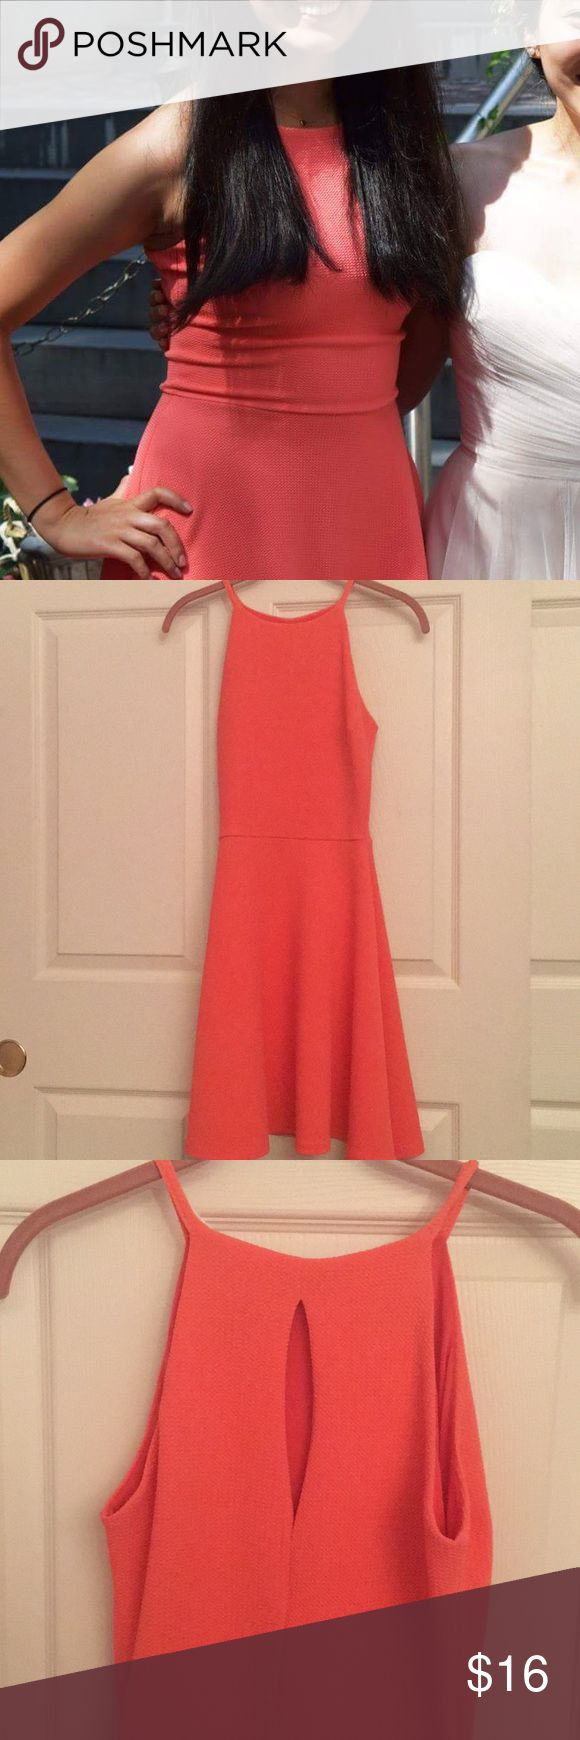 Coral pink halter style A-line dress Coral pink halter style A-line dress. Worn once to a wedding. Size small. Stretchy material that is extremely flattering! Bought from Nordstrom Rack online. Nordstrom Dresses